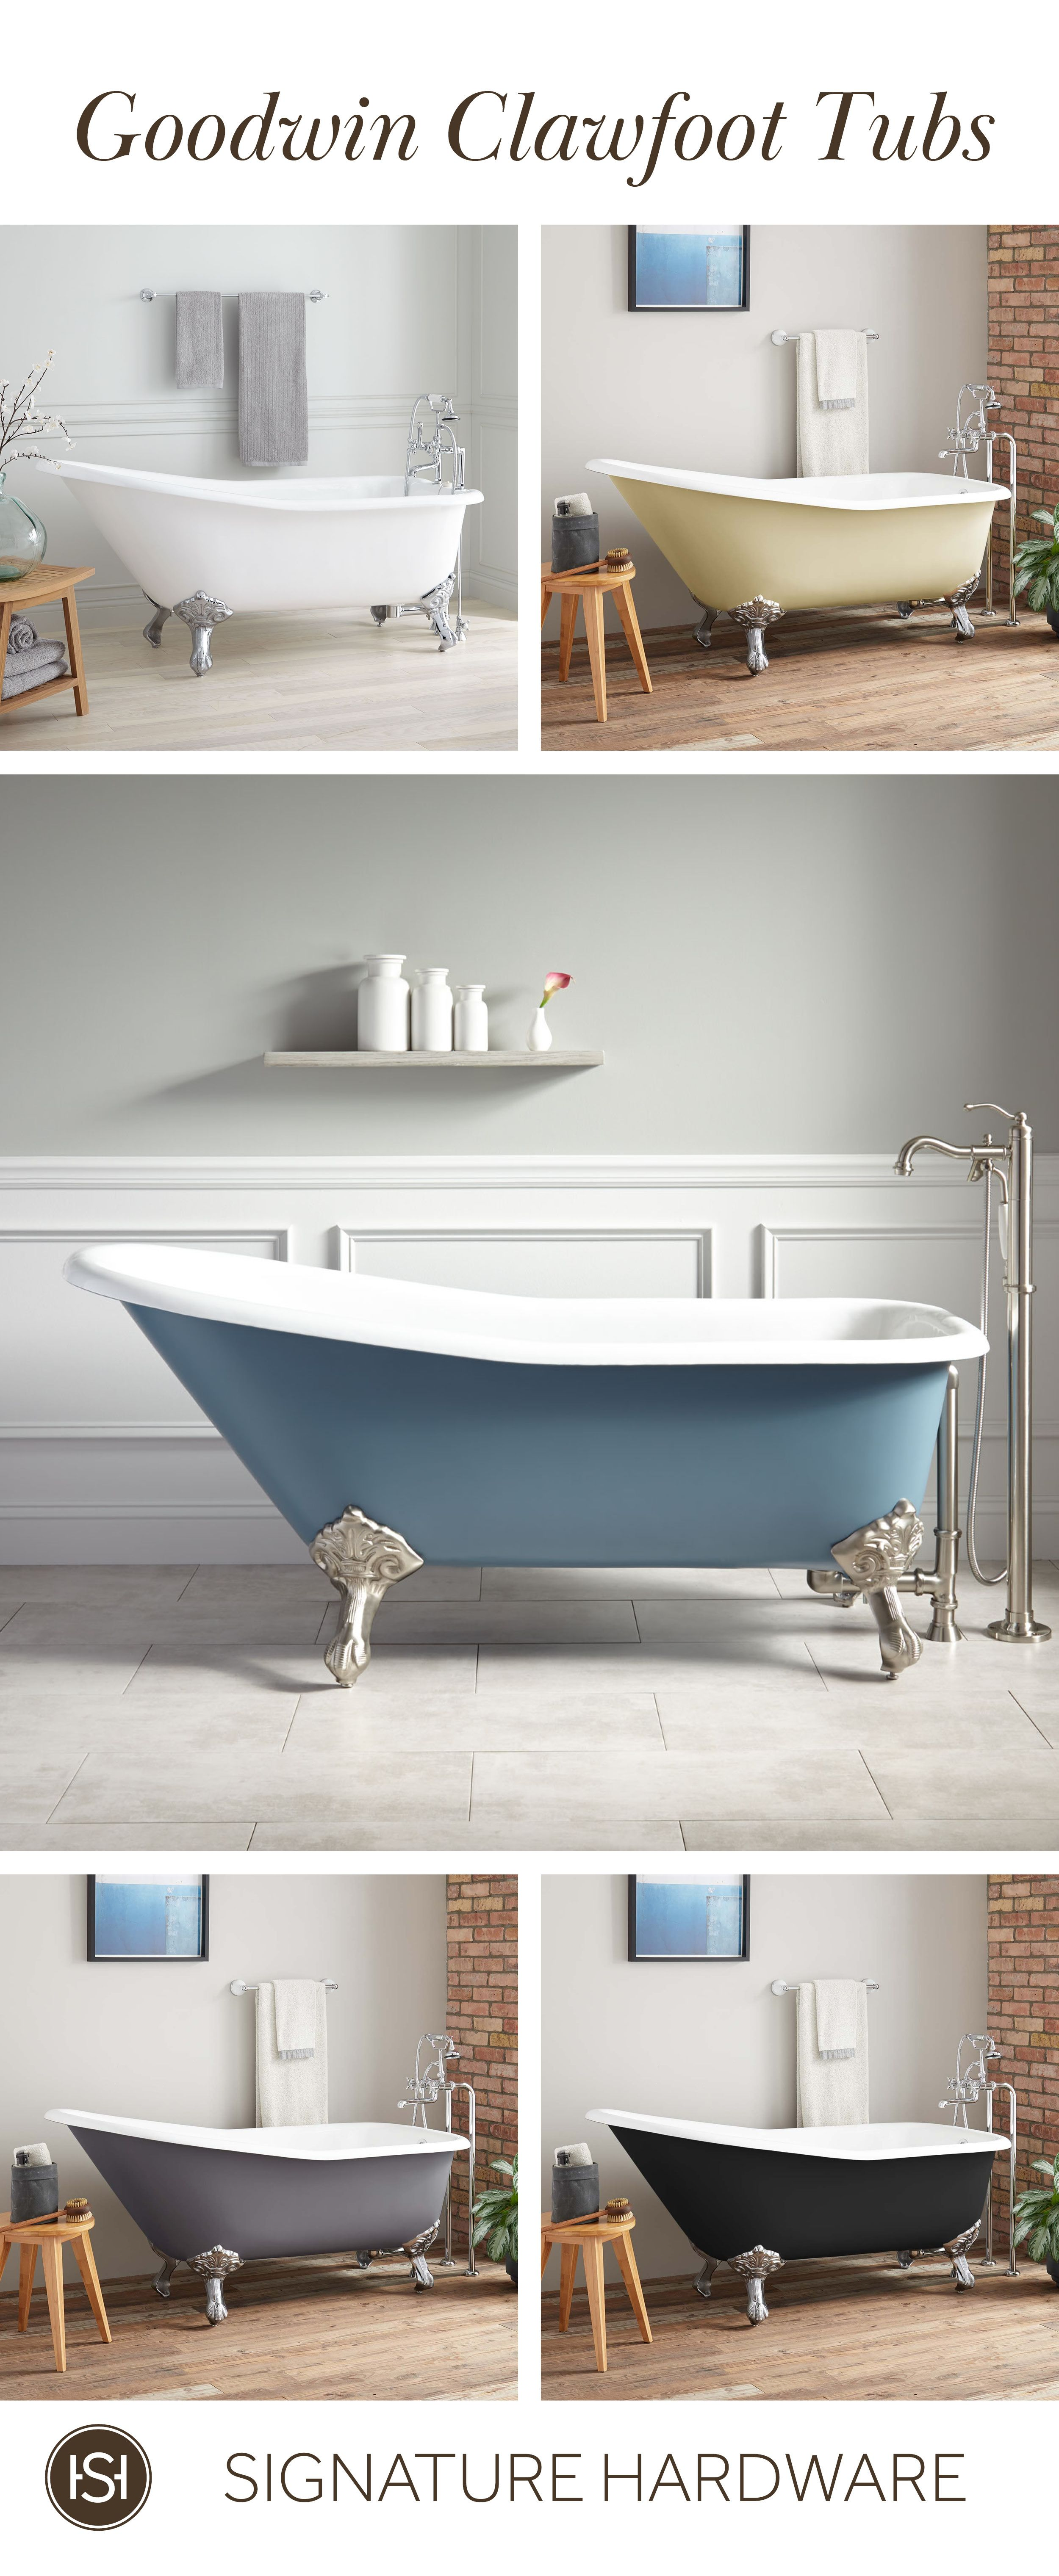 Custom Painting Your Tub Can Give Your Bathroom A Refreshing Pop